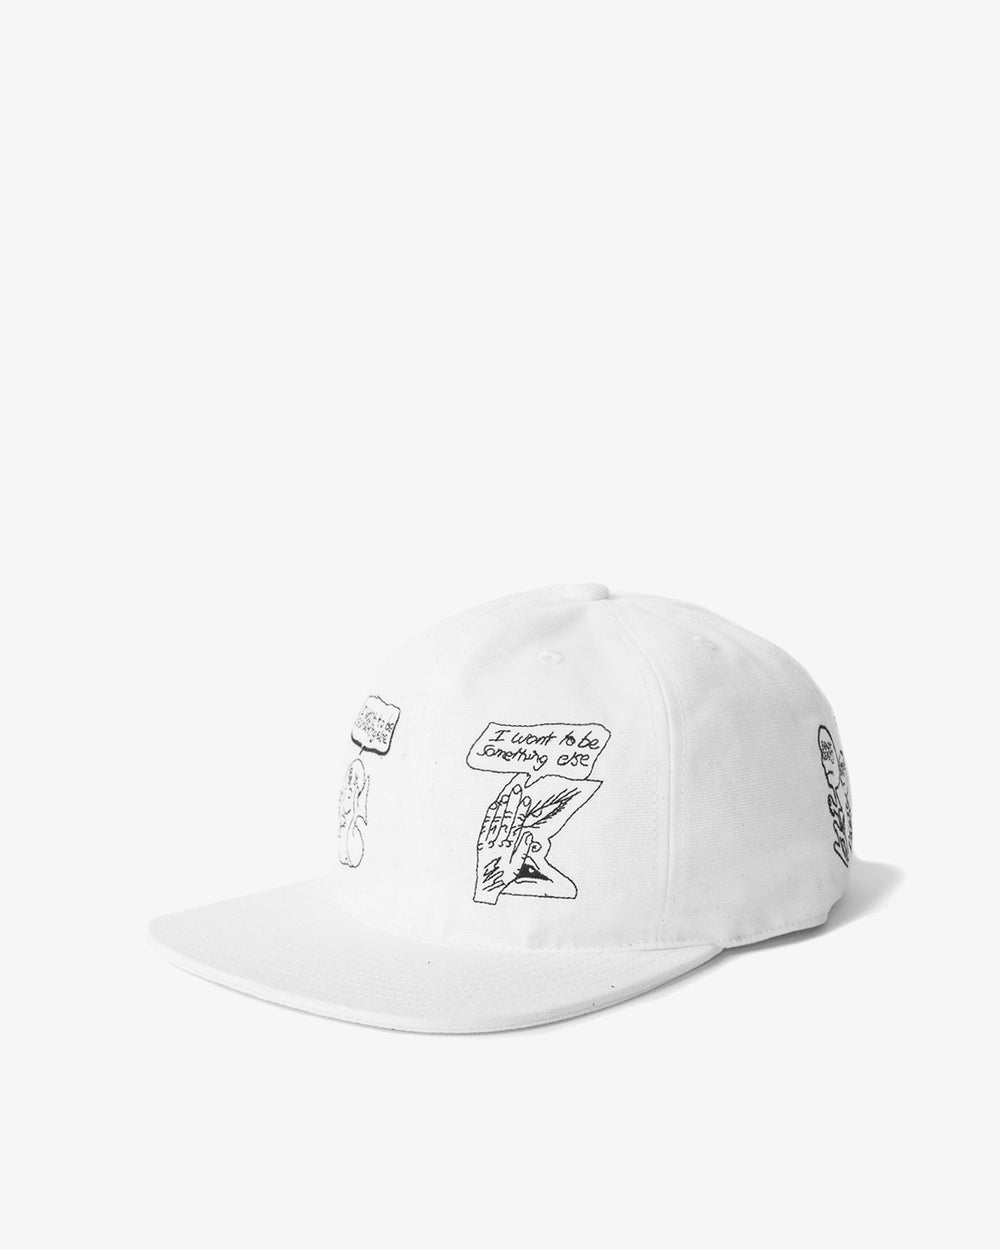 Brain Dead - Leon Sadler Strap Back Hat (Cream)